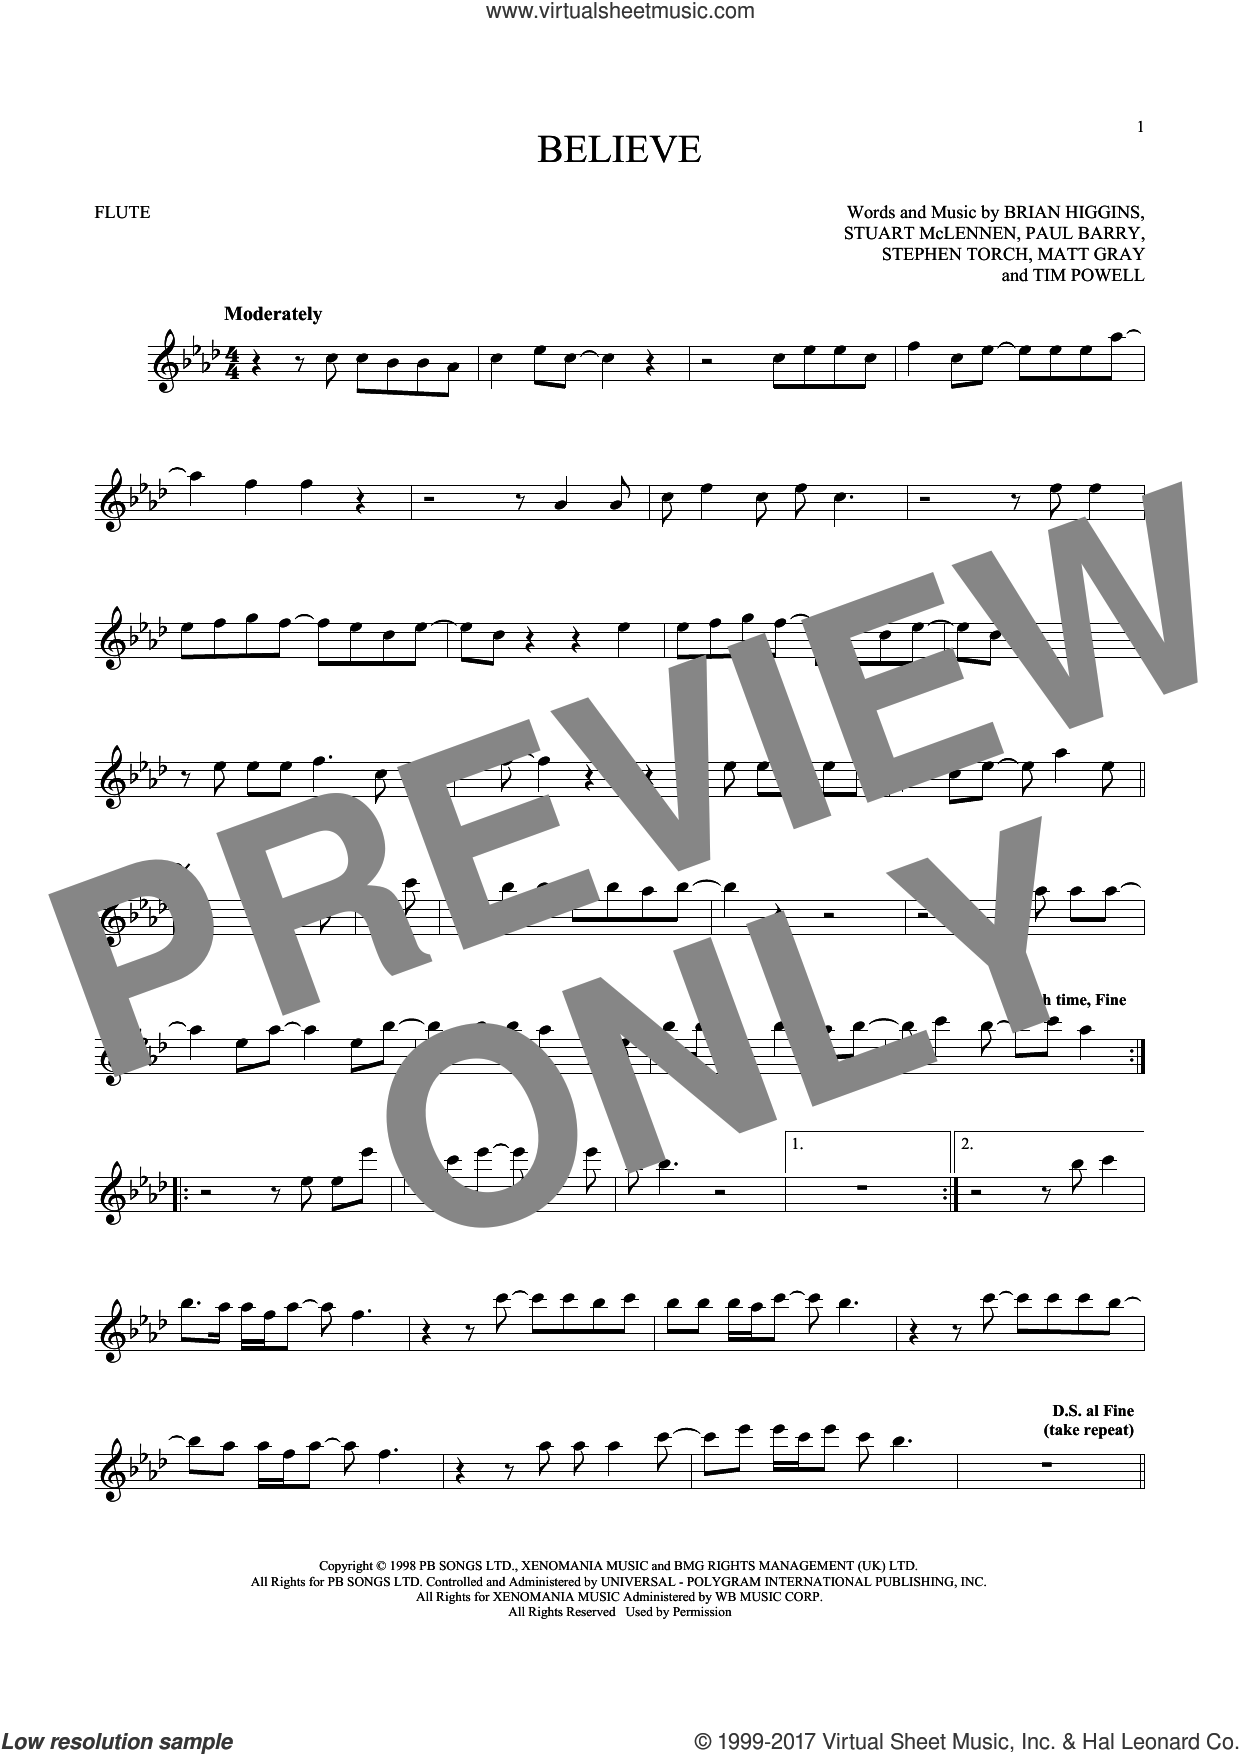 Believe sheet music for flute solo by Cher, Brian Higgins, Matt Gray, Paul Barry, Stephen Torch, Stuart McLennen and Timothy Powell, intermediate skill level